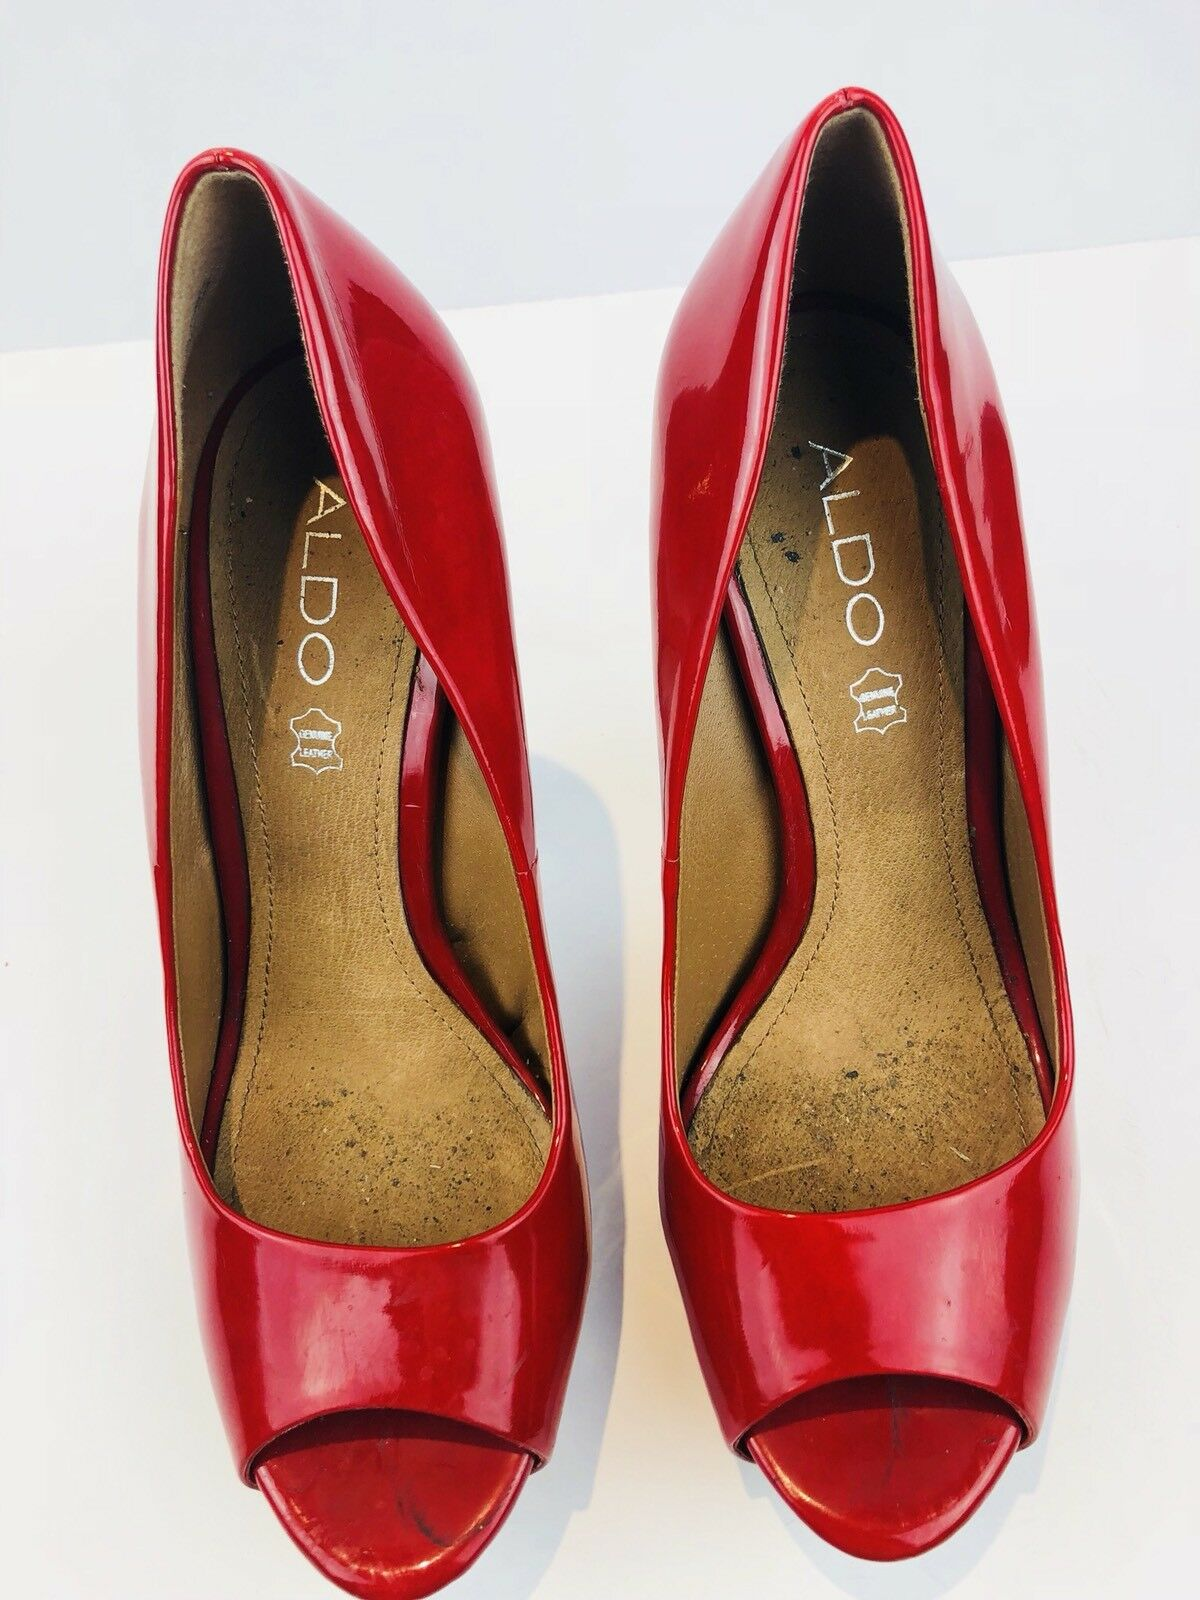 ALDO Red Open Toe High Heel Slip On Platform Pumps shoes Size 9